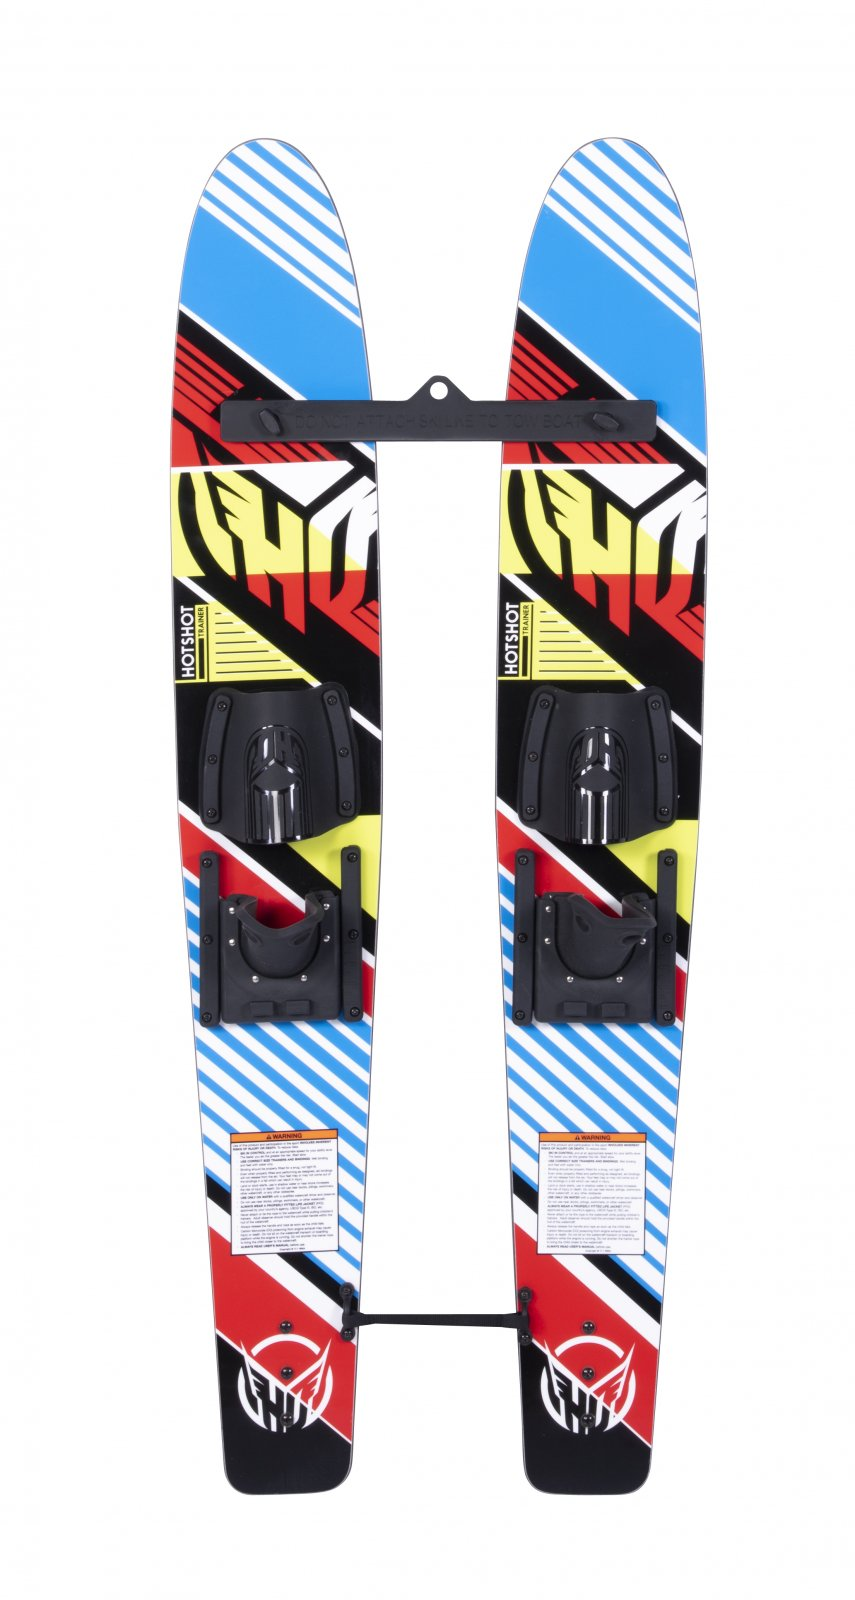 2020 HO Hot Shot Trainers Combo Waterskis